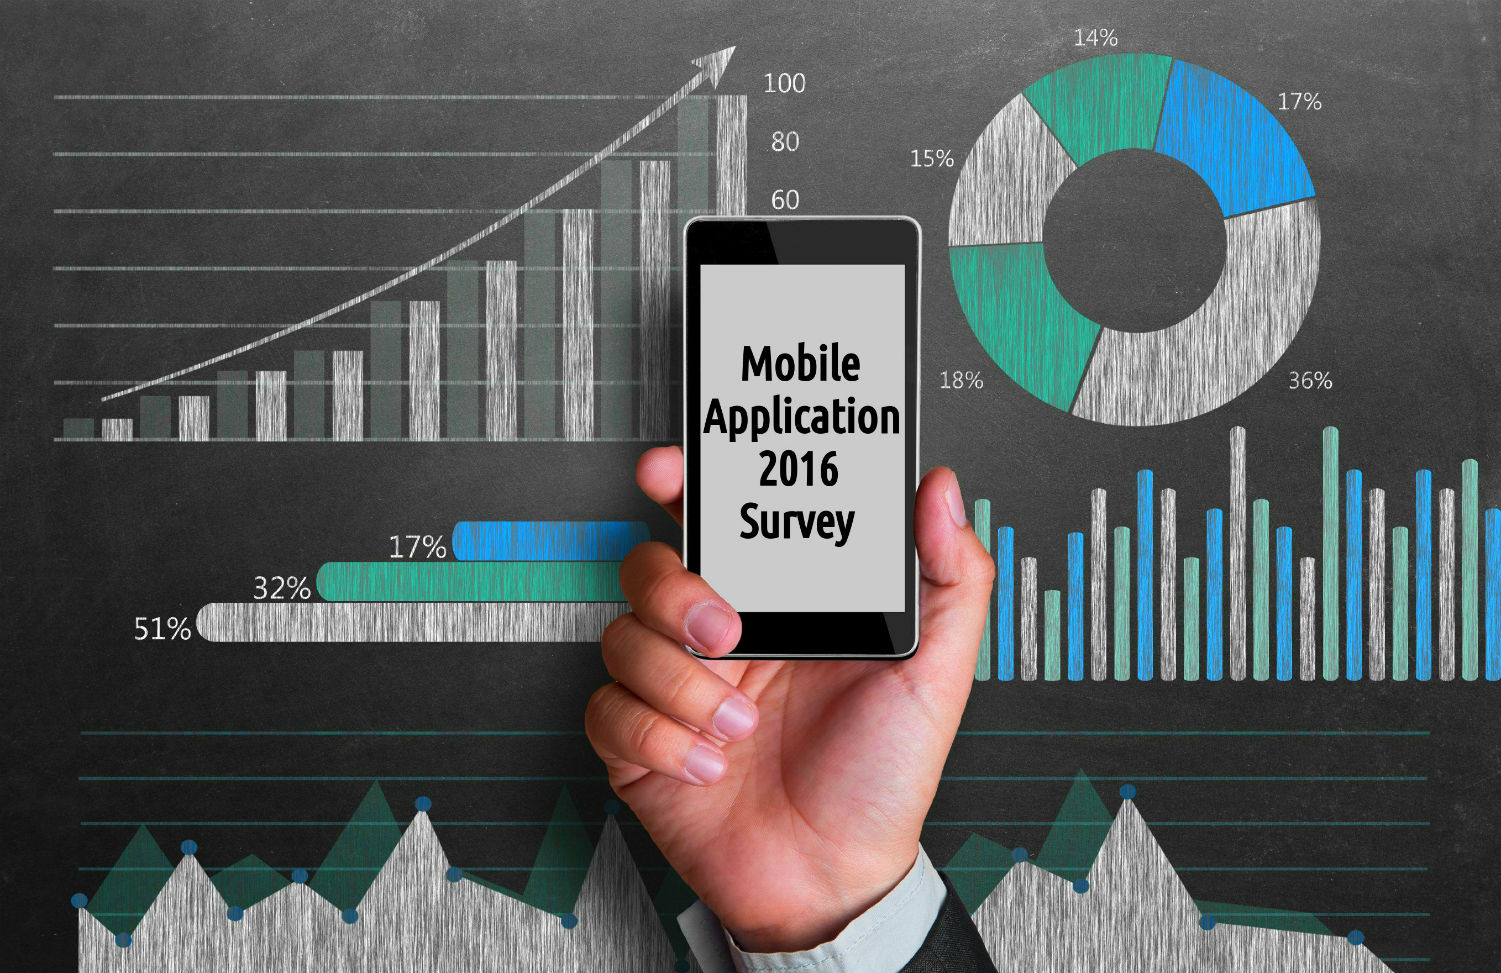 Mobile App 2016 Survey